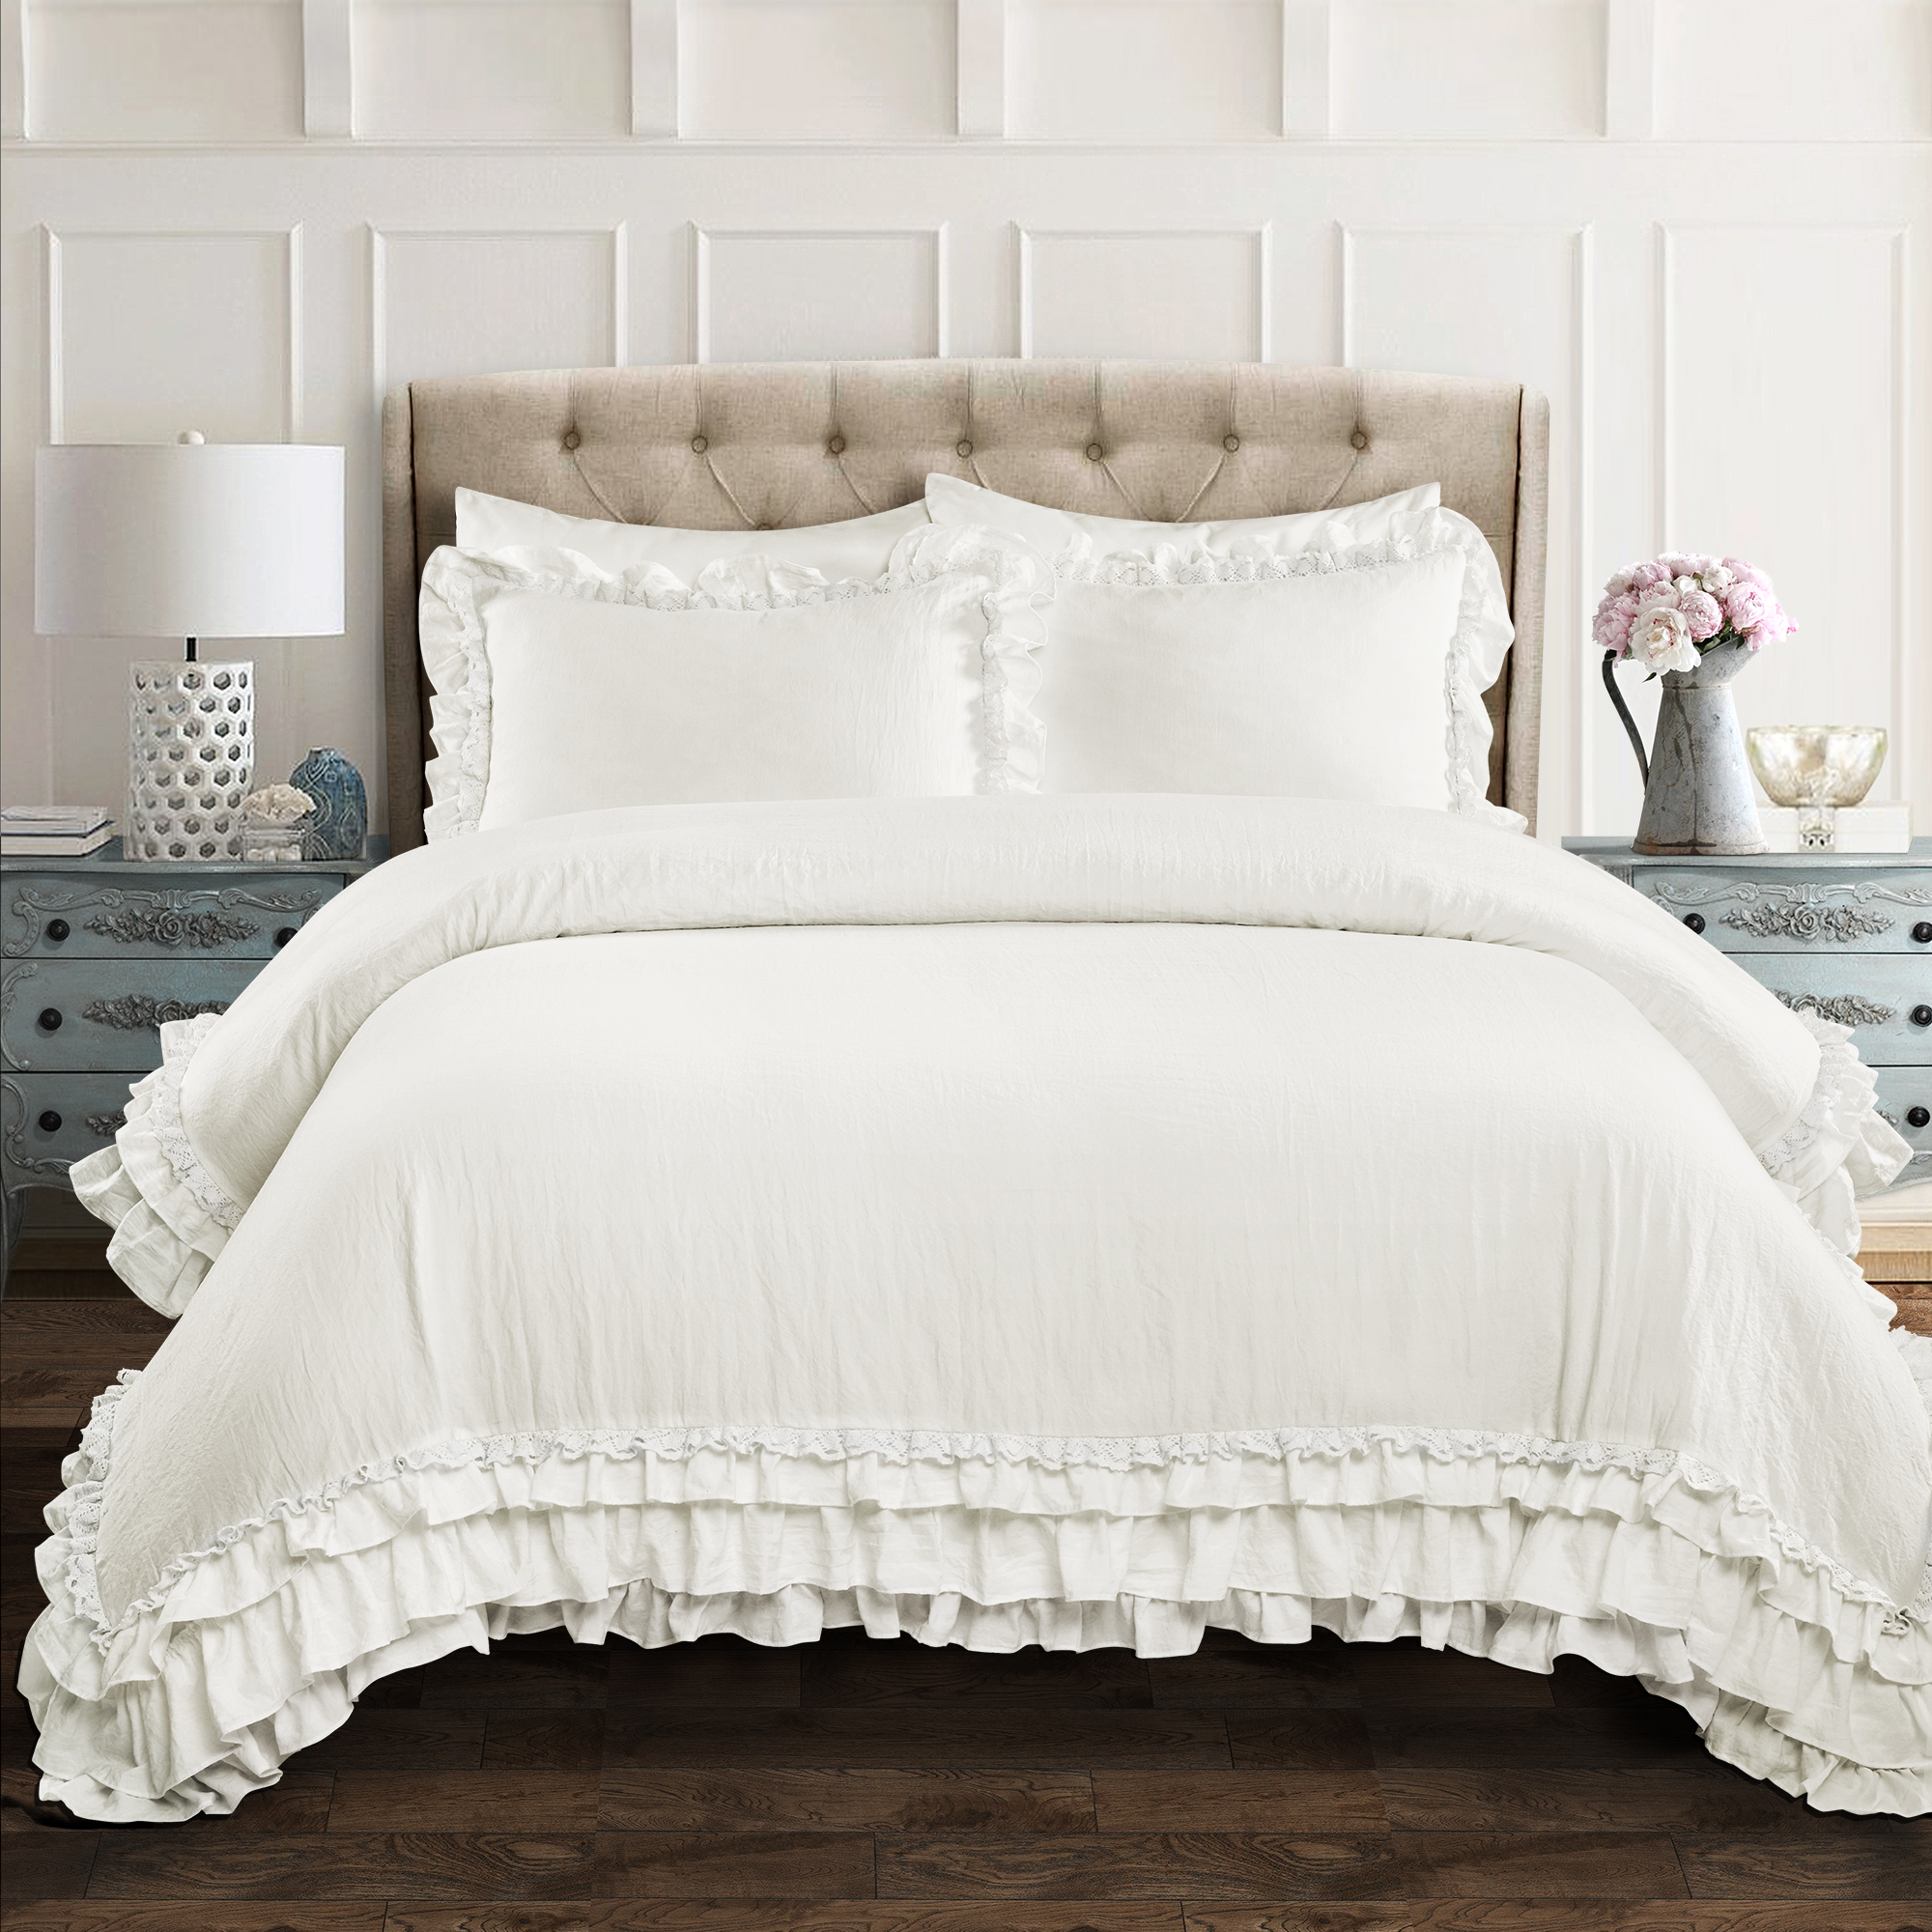 ella shabby chic ruffle lace comforter set multiple colors